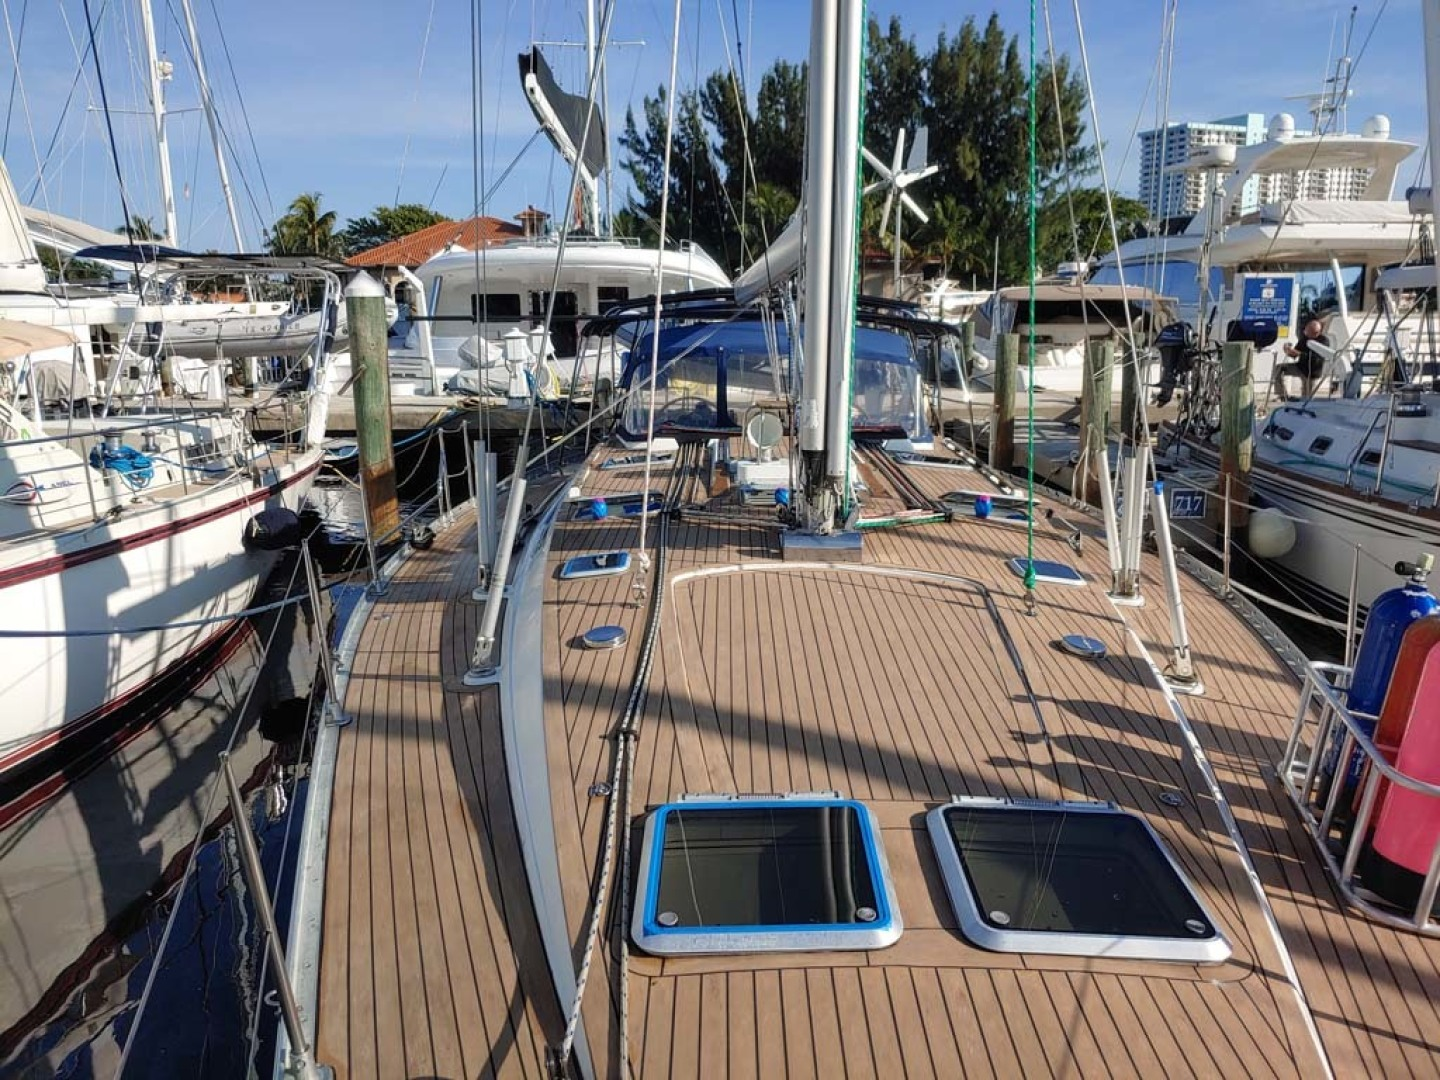 Jeanneau-Sun Odyssey 52.2 2001-Perseverance Hollywood-Florida-United States-Foredeck Aft-1631439 | Thumbnail